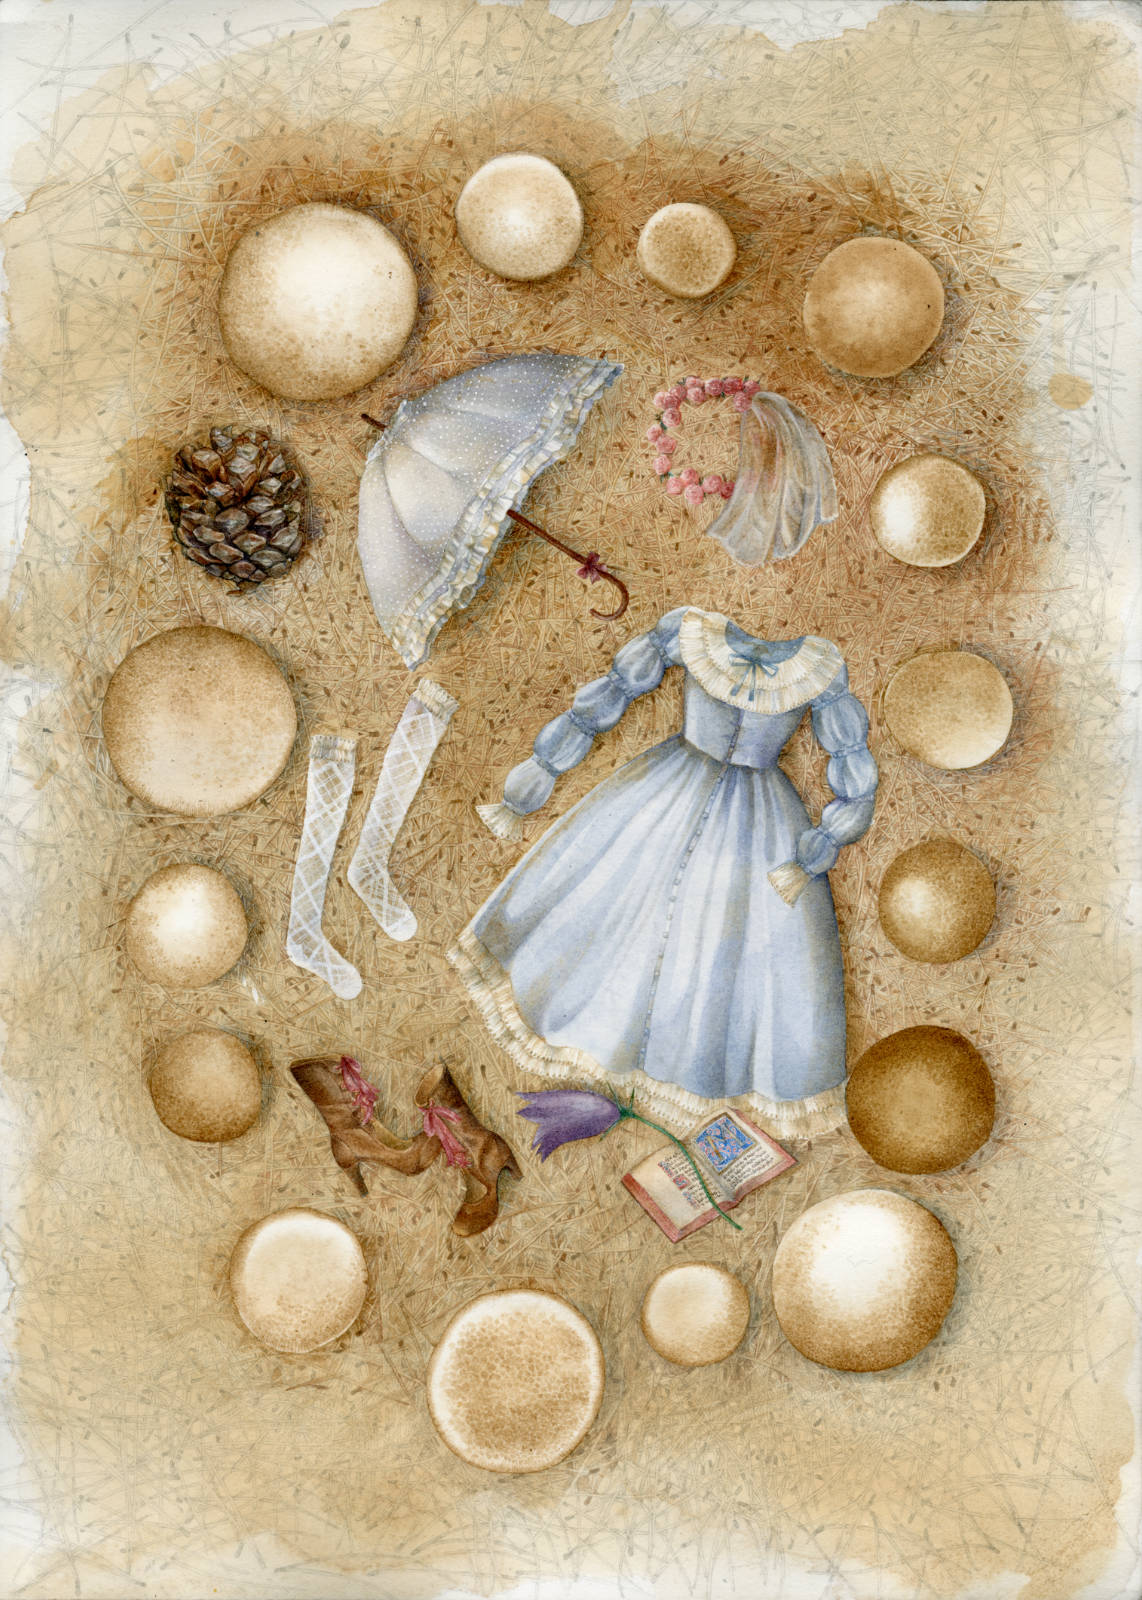 Fairy ring enclosing a fashionable composition of classic lolita clothing and interests laid on a pine needles bed, such as pine cones and bluebells collected in the wild, a medieval book with an illumination, boots, an umbrella and a flower crown.